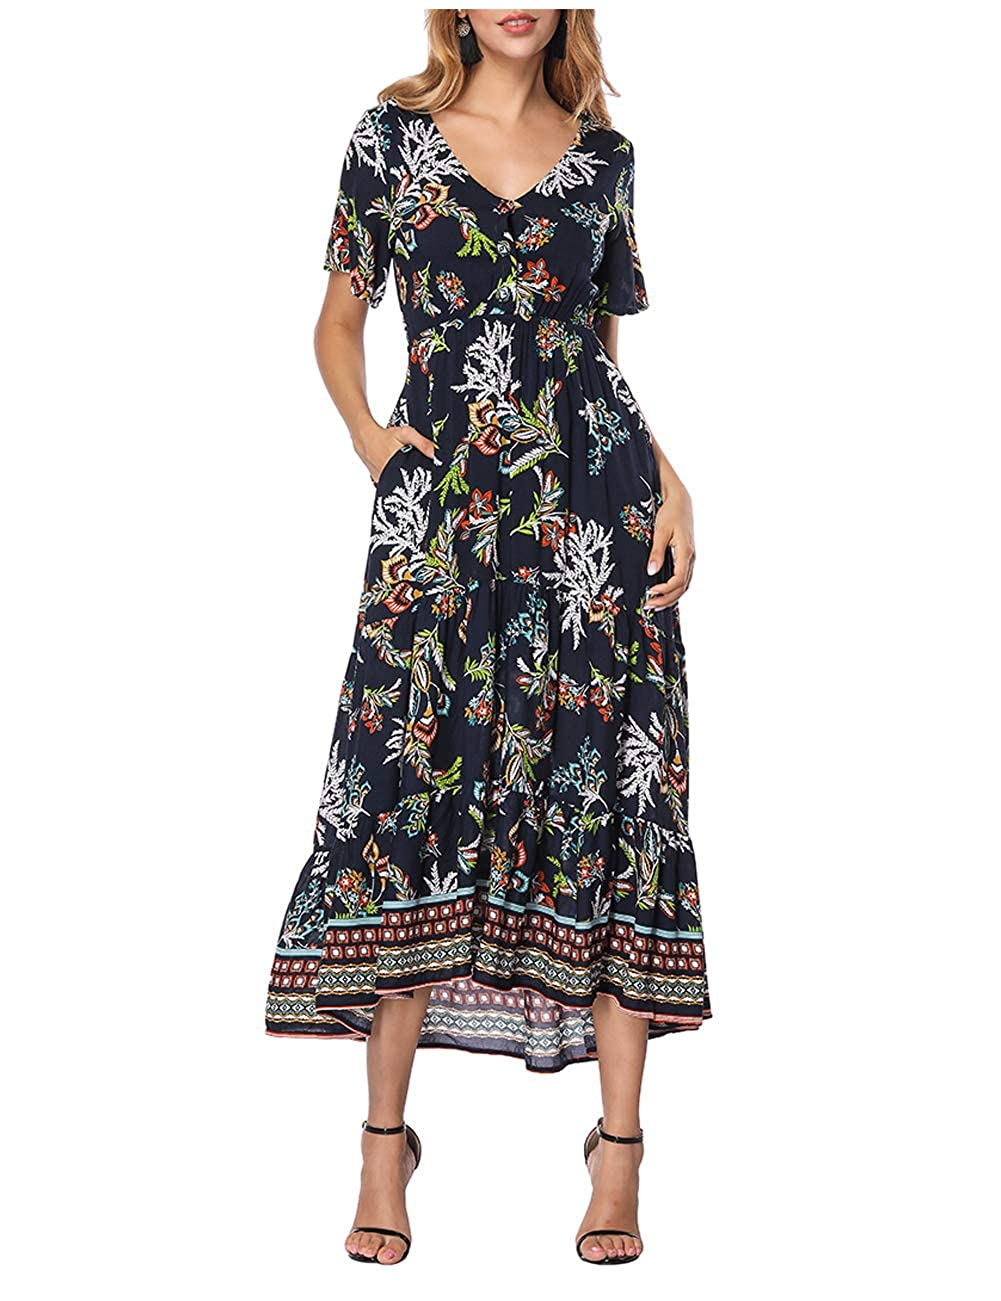 c112b20ceec Women s Dress Floral V Neck Elastic Waist Long Sleeve Boho Midi Party  Dresses